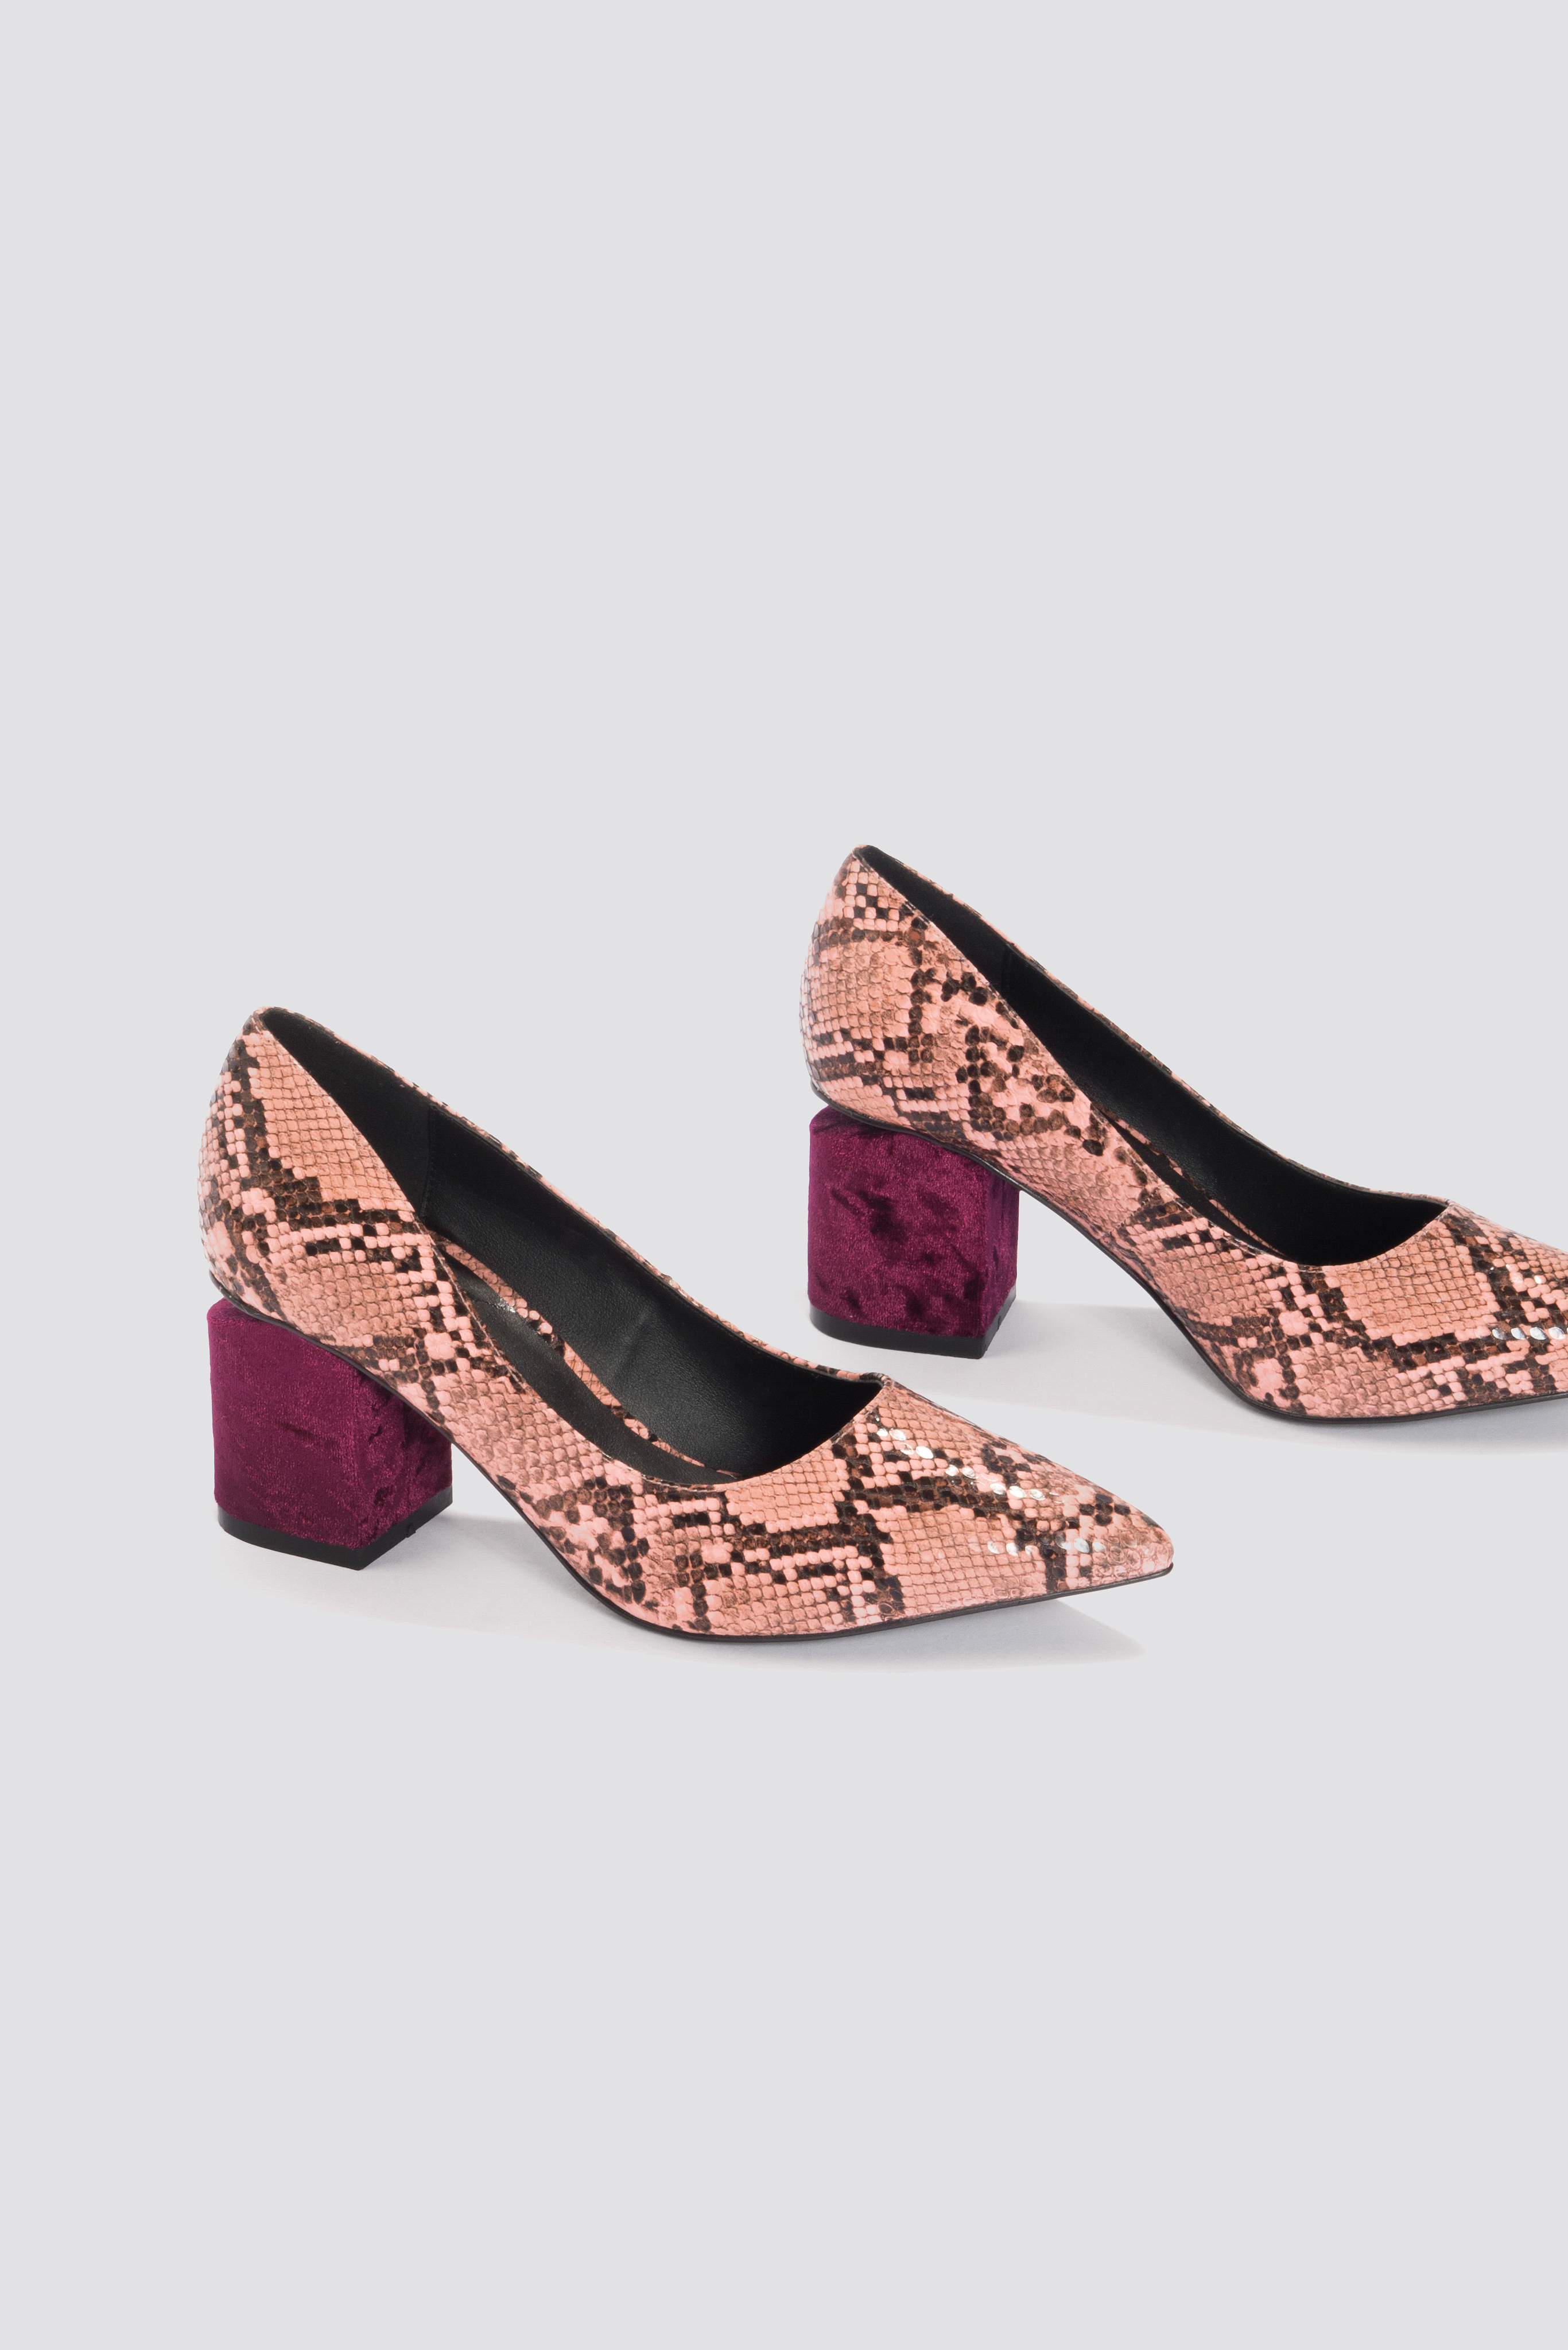 NA-KD Cut Out Heel Snake Pumps - Pink, Purple